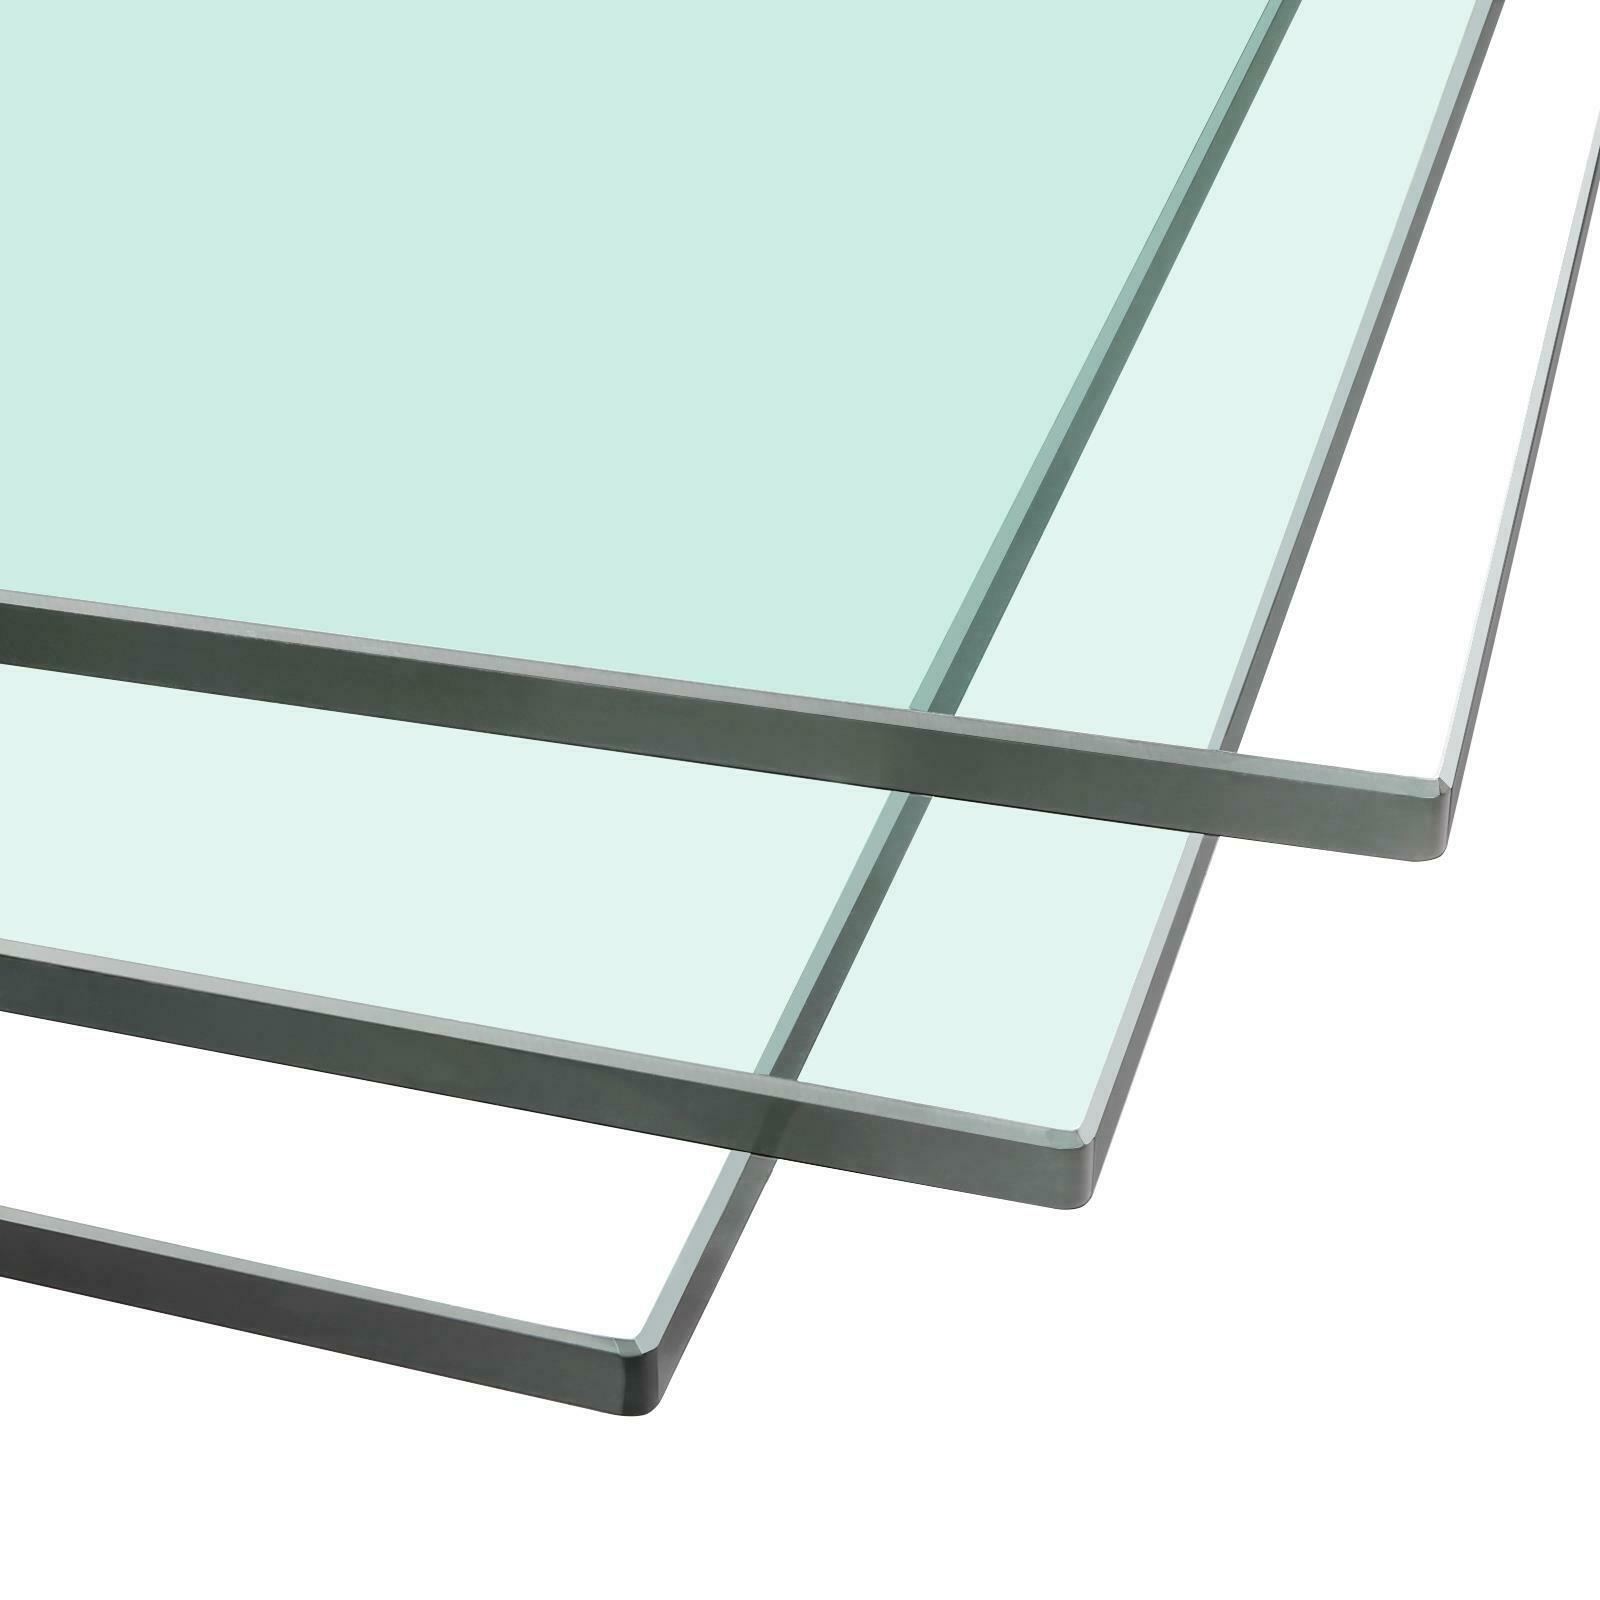 100cm x 60cm CE Certified 10mm Clear Toughened Safety Glass